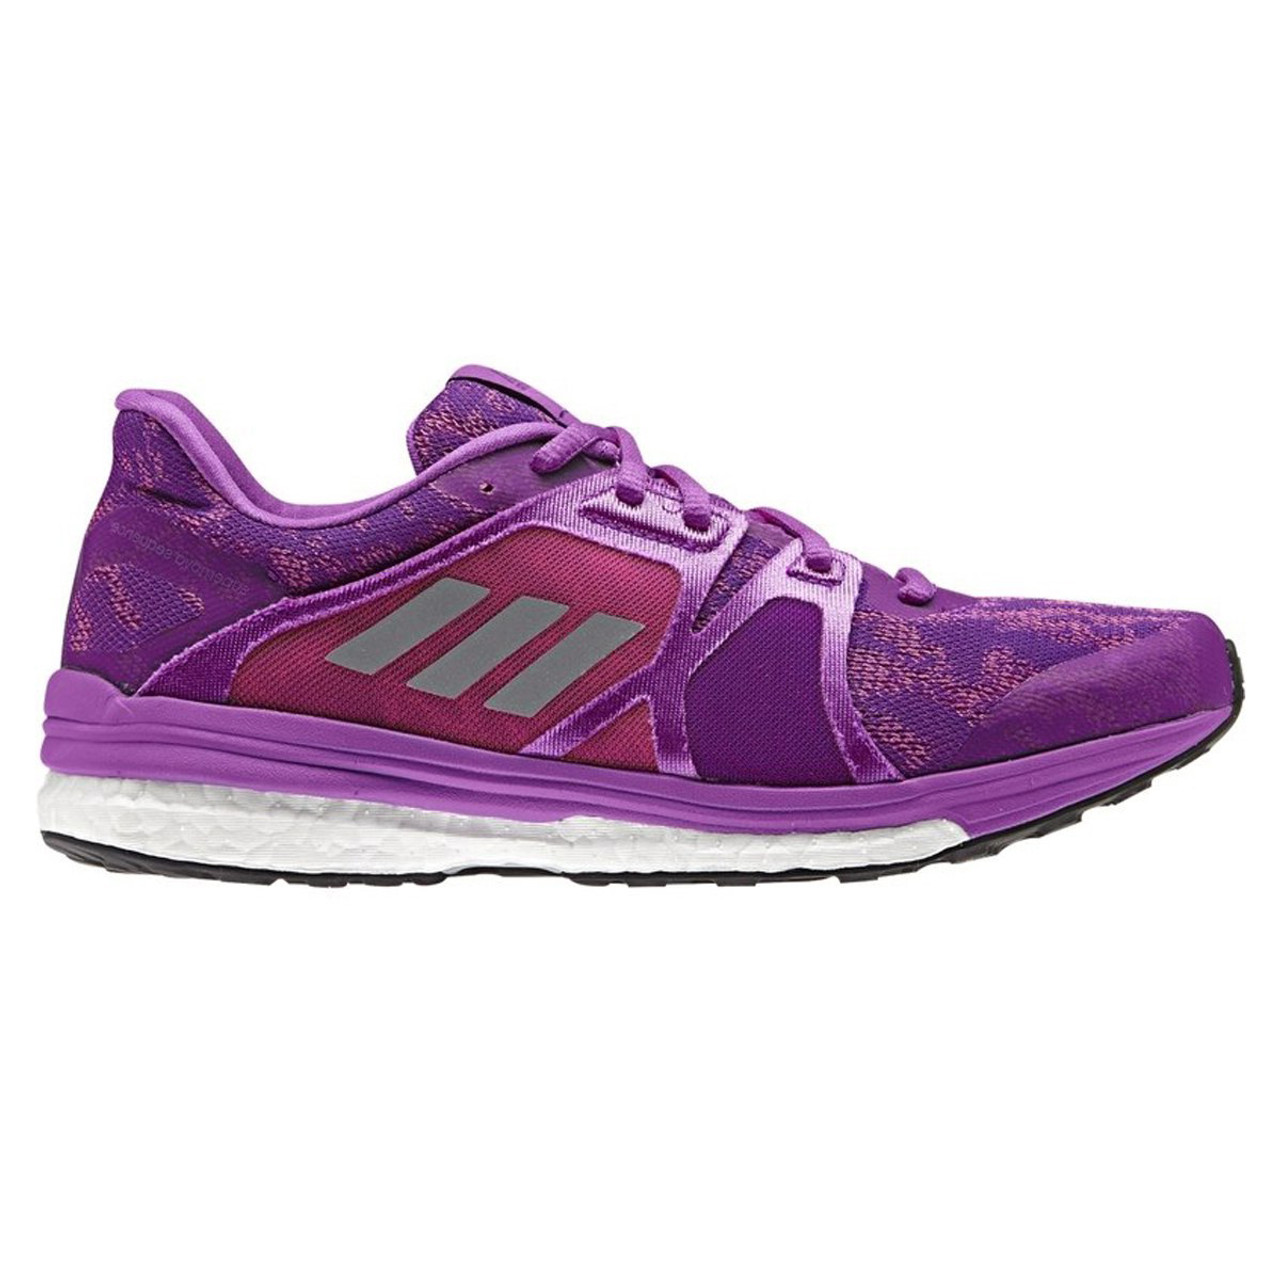 ca6c1cee4 Adidas Supernova Sequence 9 Women s Running Shoes AQ3548 - Purple ...